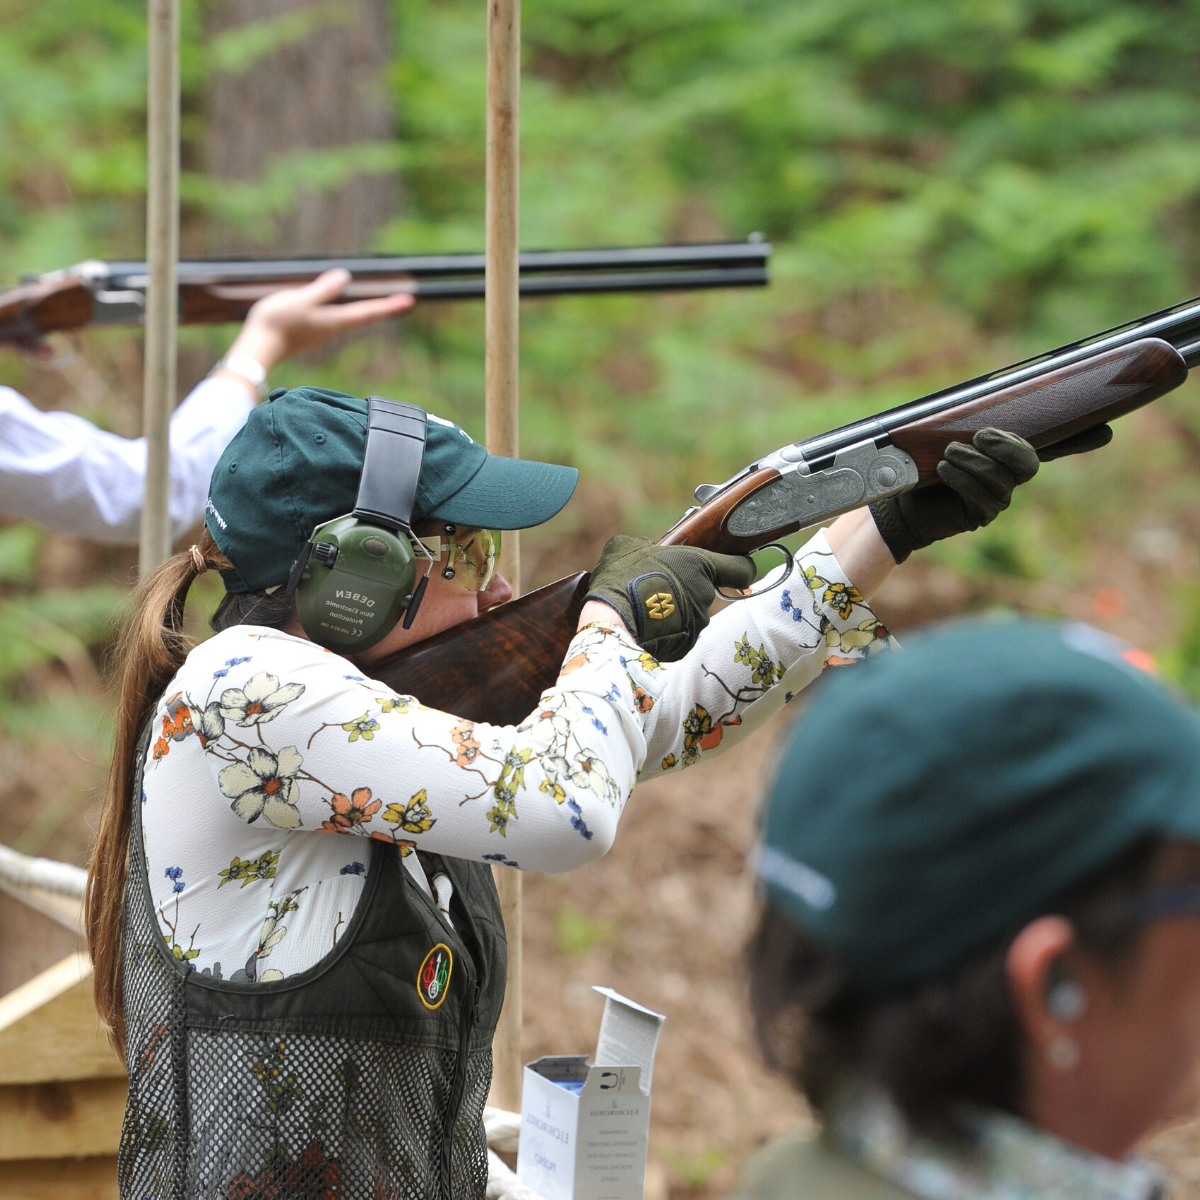 Three people holding shotguns at clay pigeon shooting event